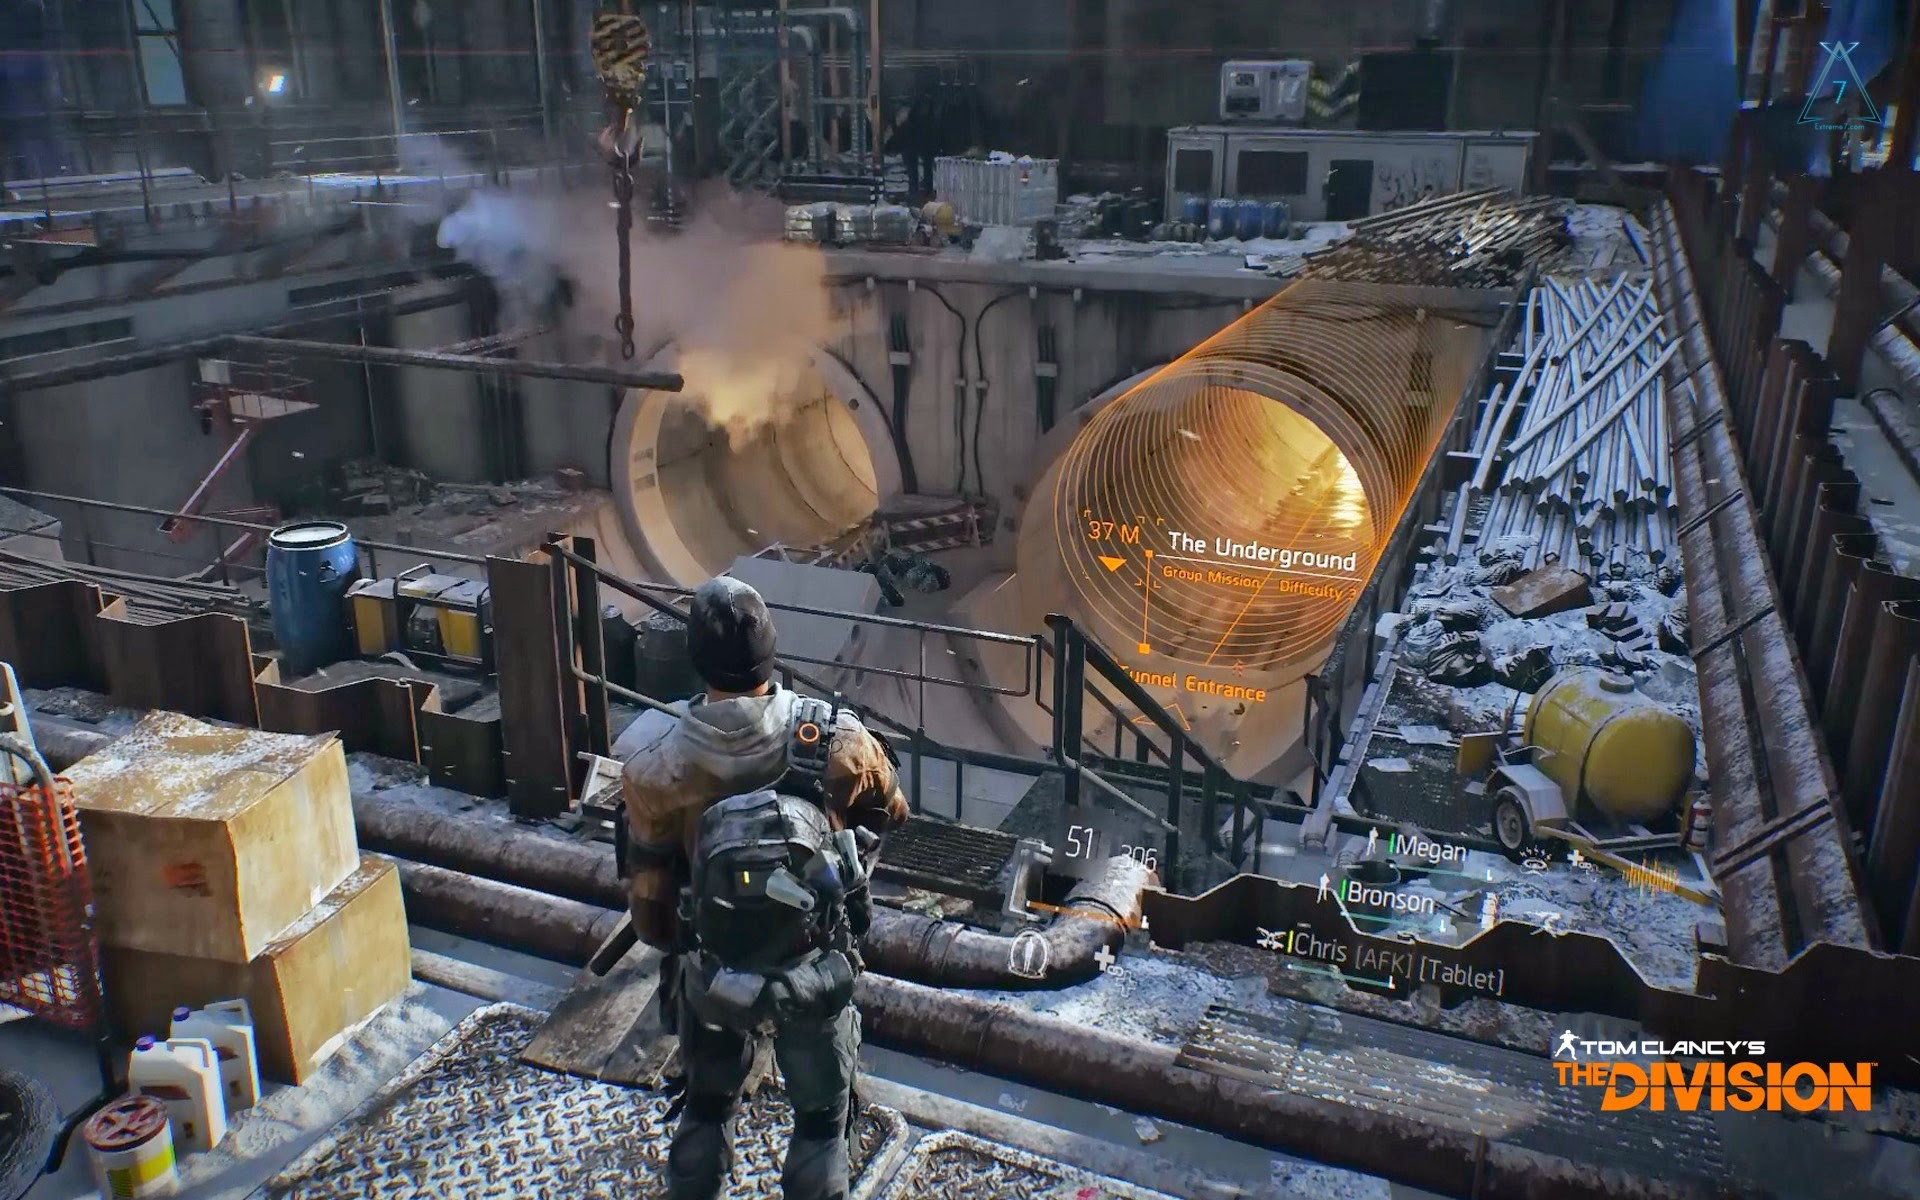 Tom Clancy's The Division Video Game 38 Free Hd Wallpaper